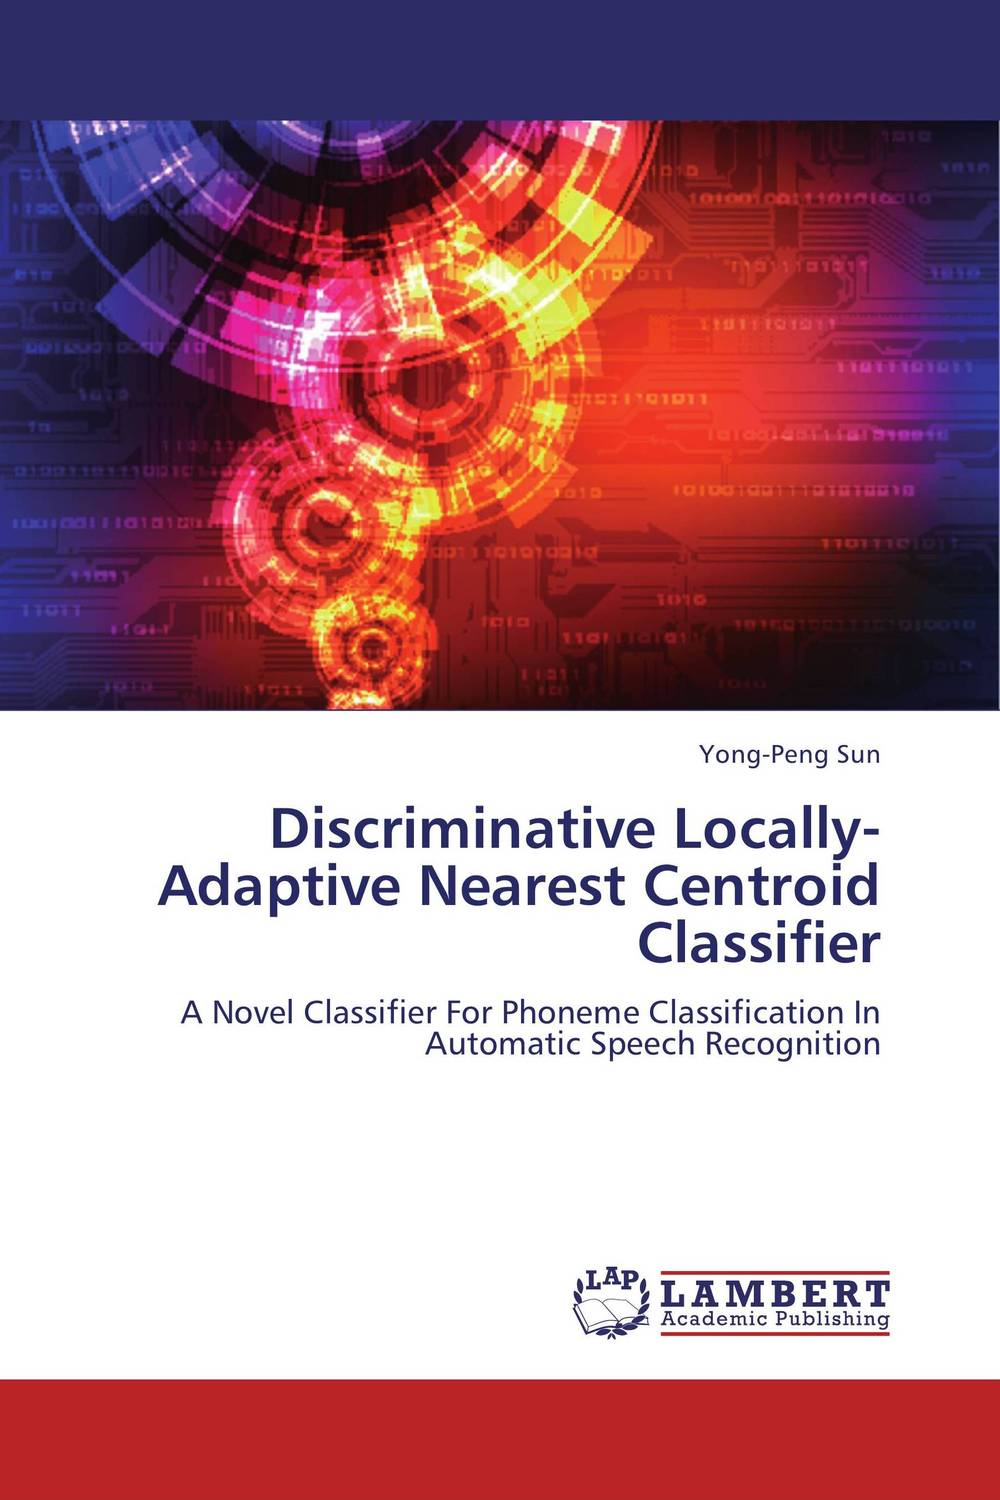 Discriminative Locally-Adaptive Nearest Centroid Classifier a subspace approach for speech signal modelling and classification